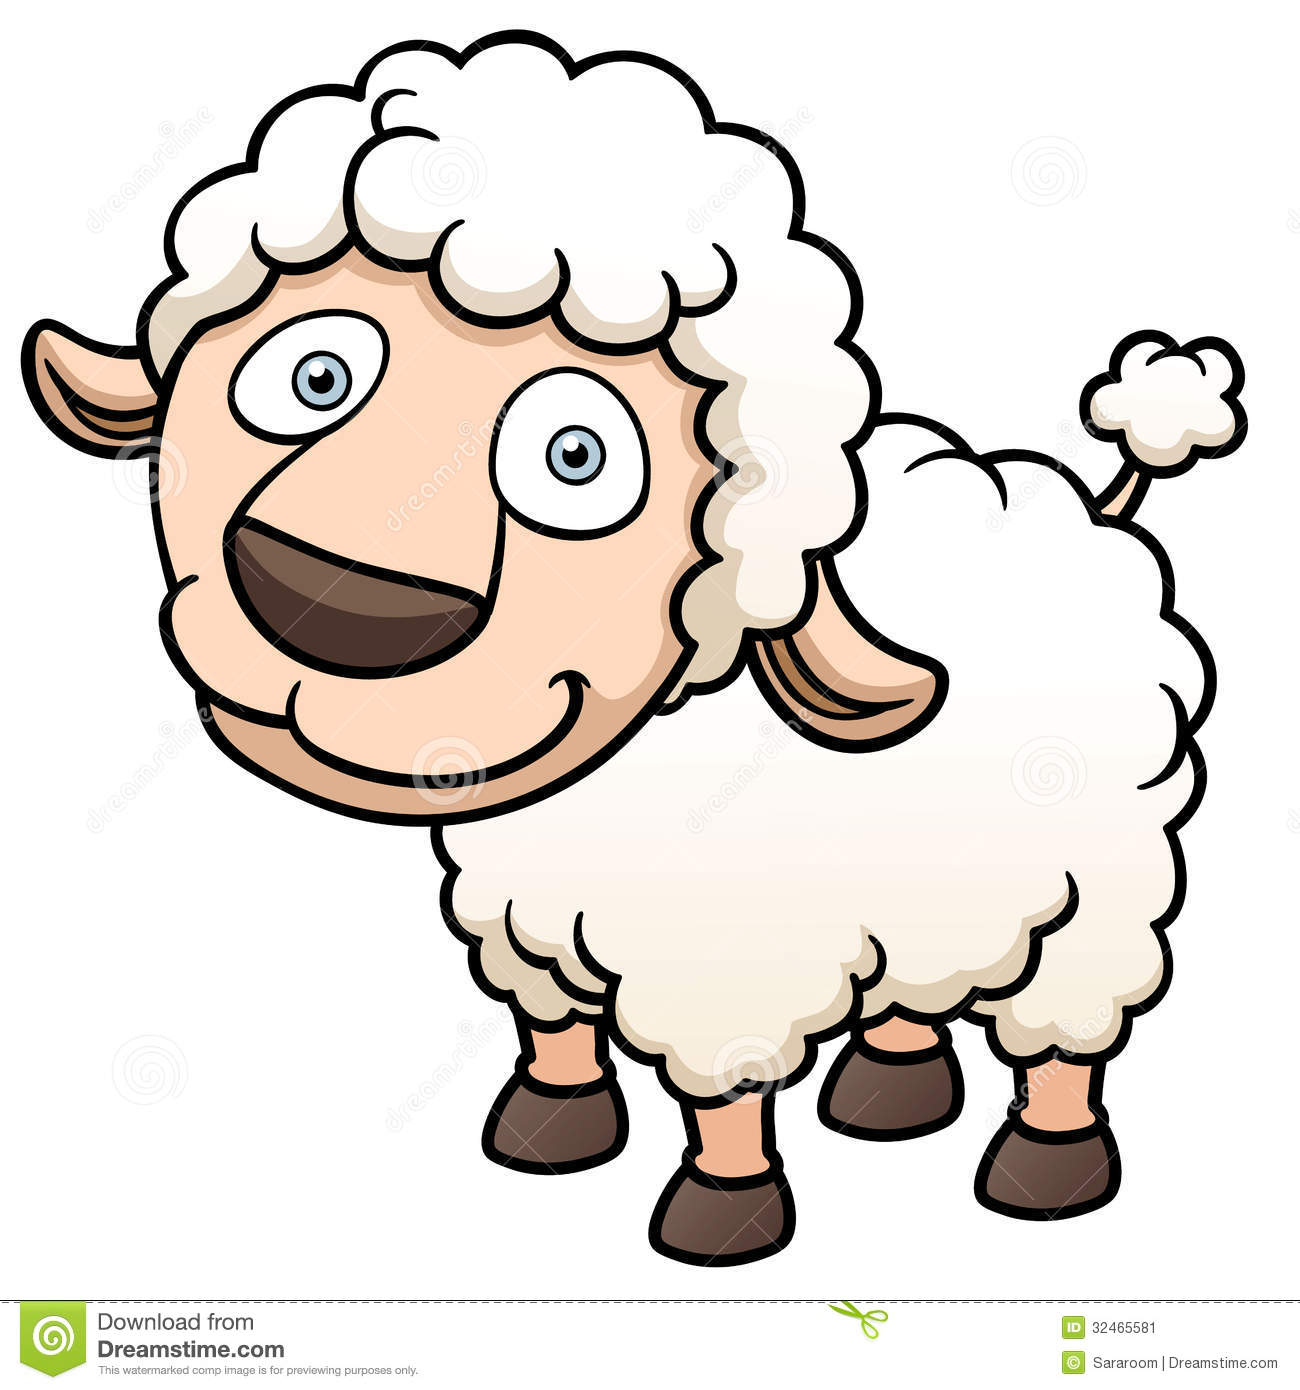 Free Download Sheep Cartoon Images 1300x1390 For Your Desktop